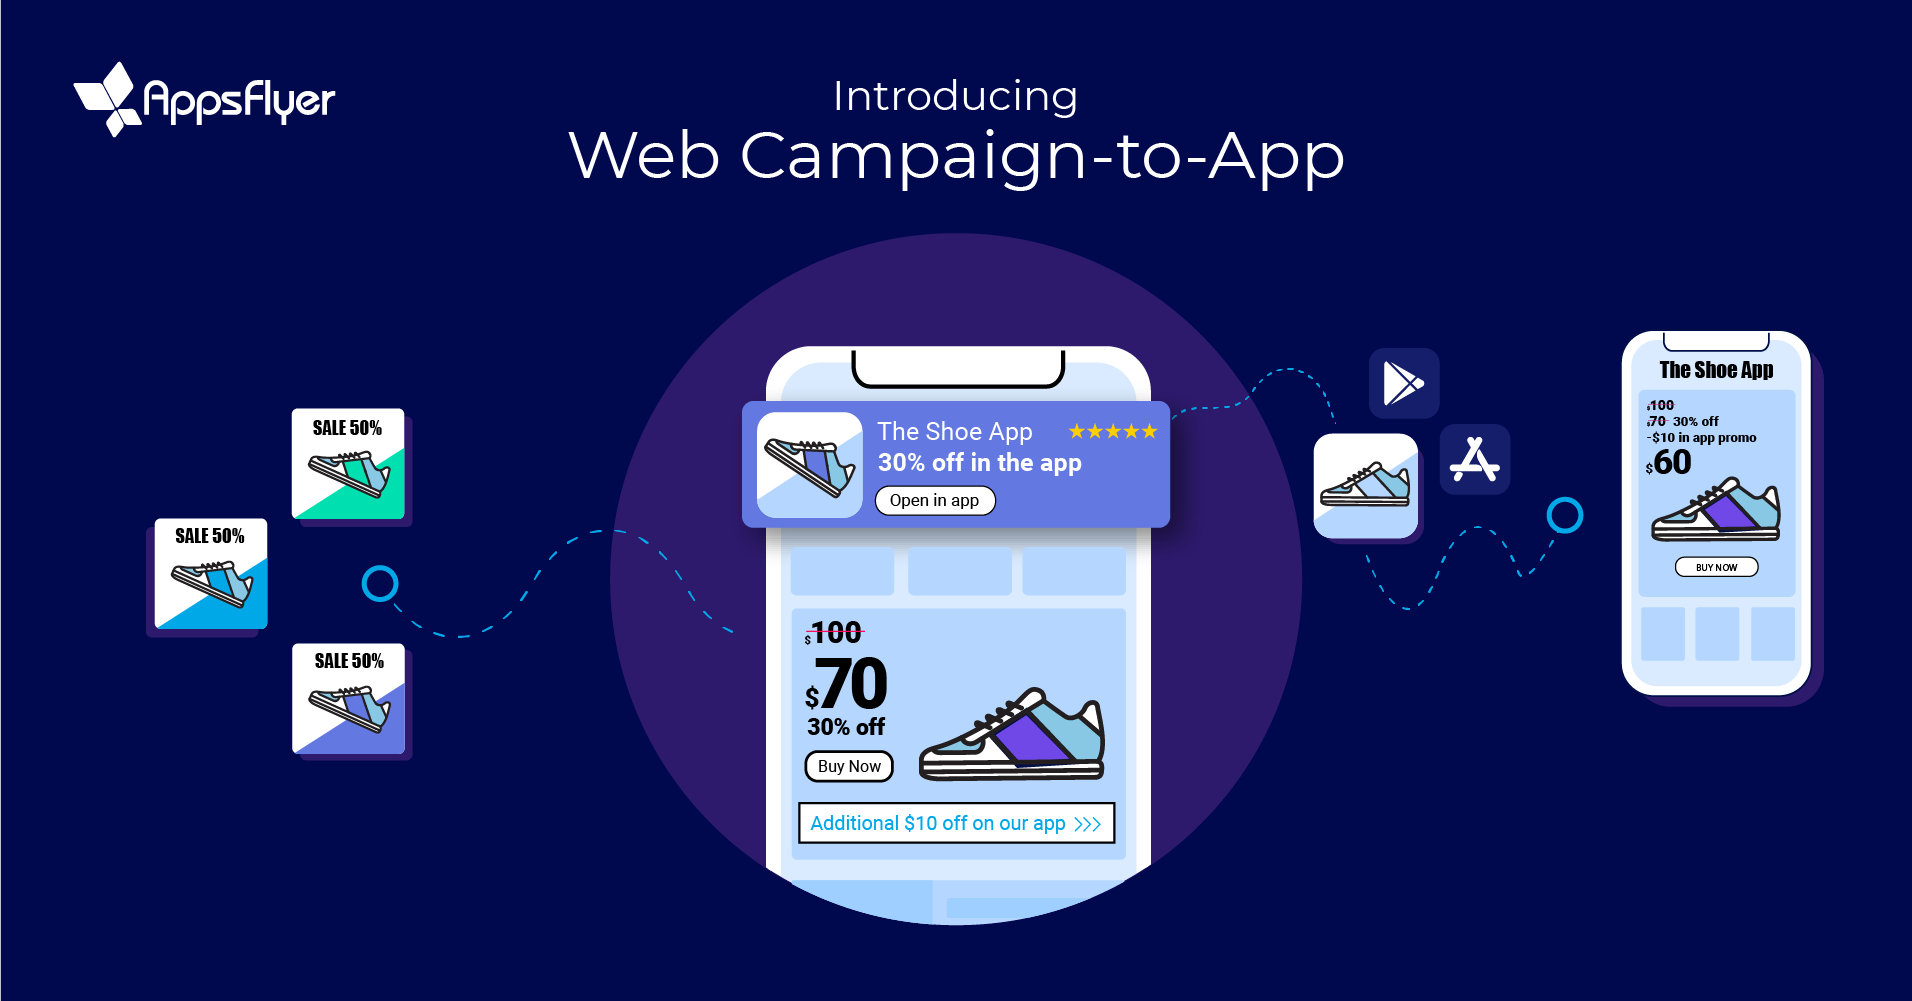 Web campaign-to-app